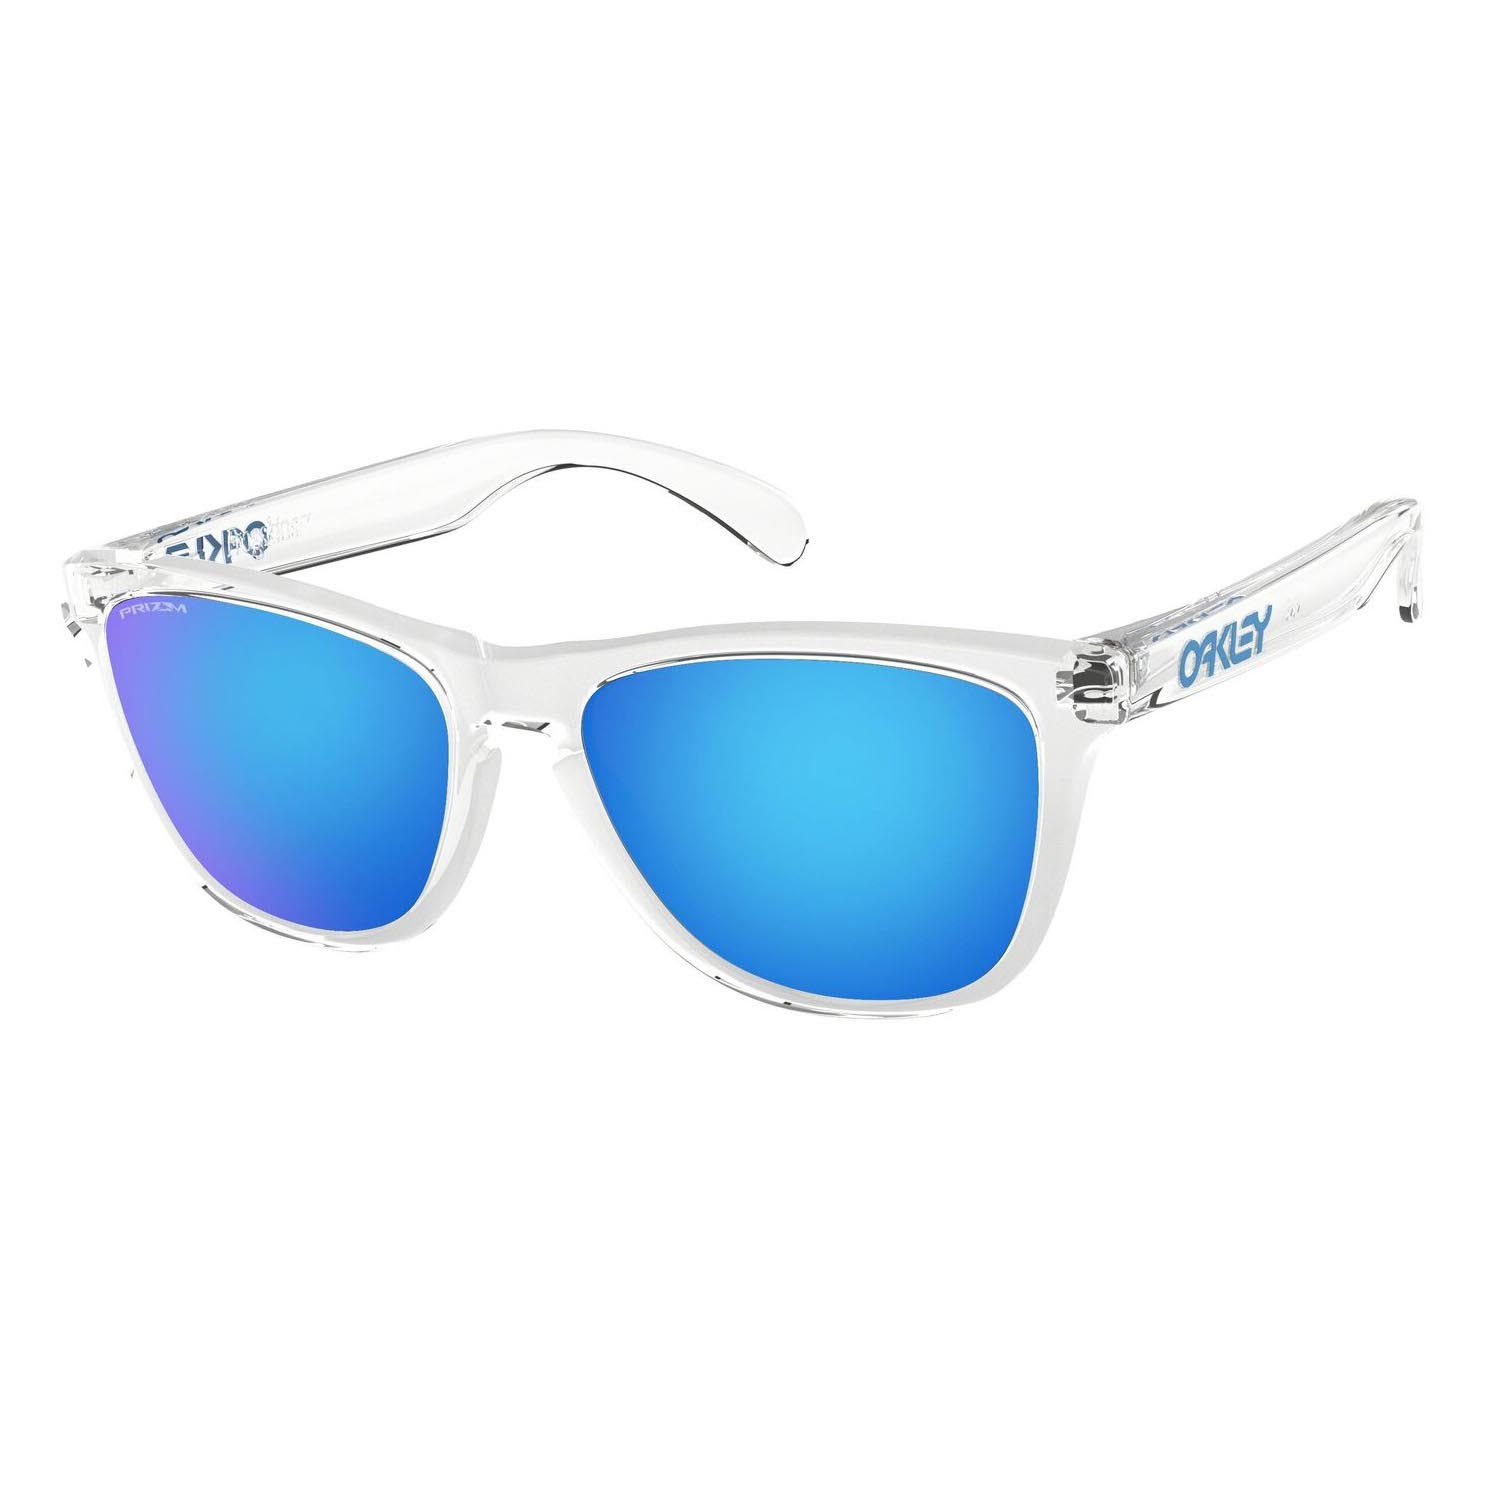 Oakley Frogskins Golf Sunglasses